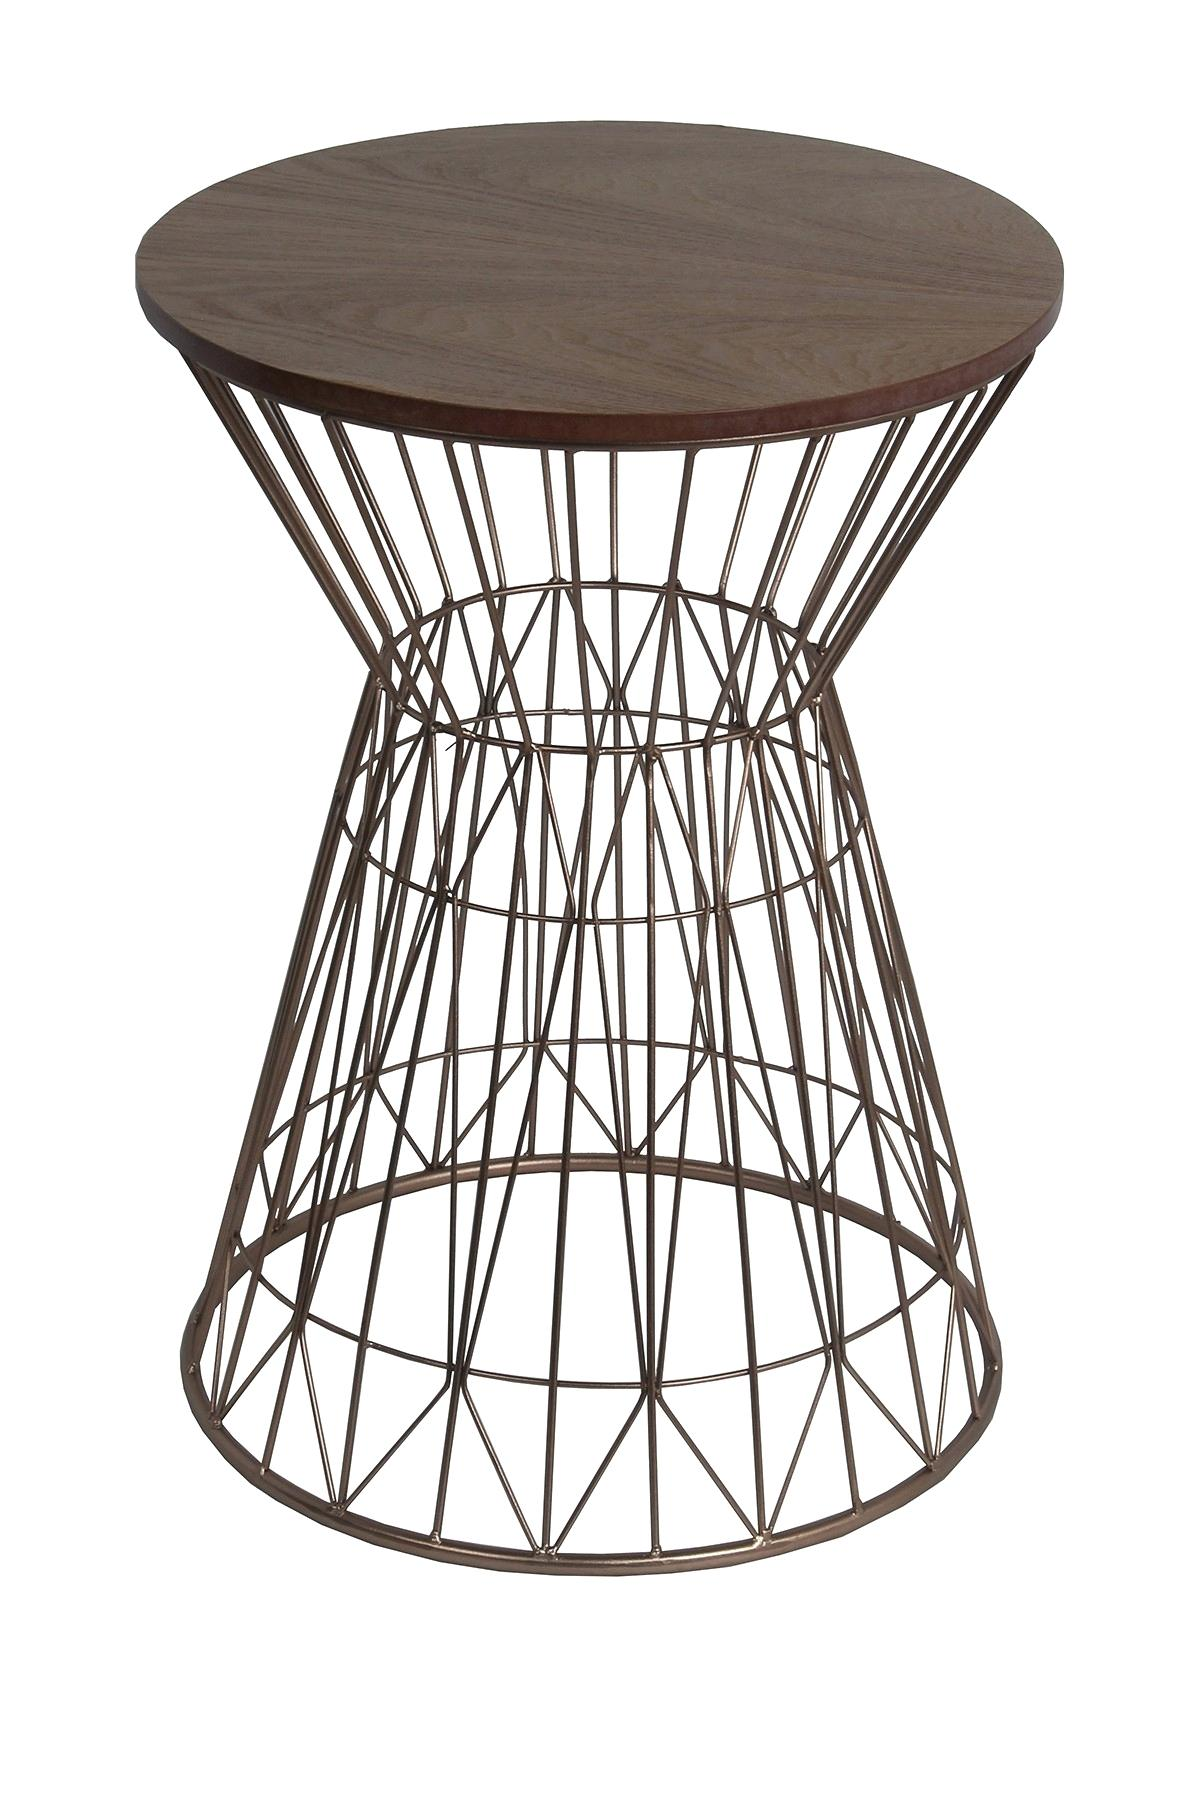 rose gold accent table end coffee and glass privilege home decor side natural tomlin hammered tall with shelves martini furniture contemporary dining chairs black wrought iron